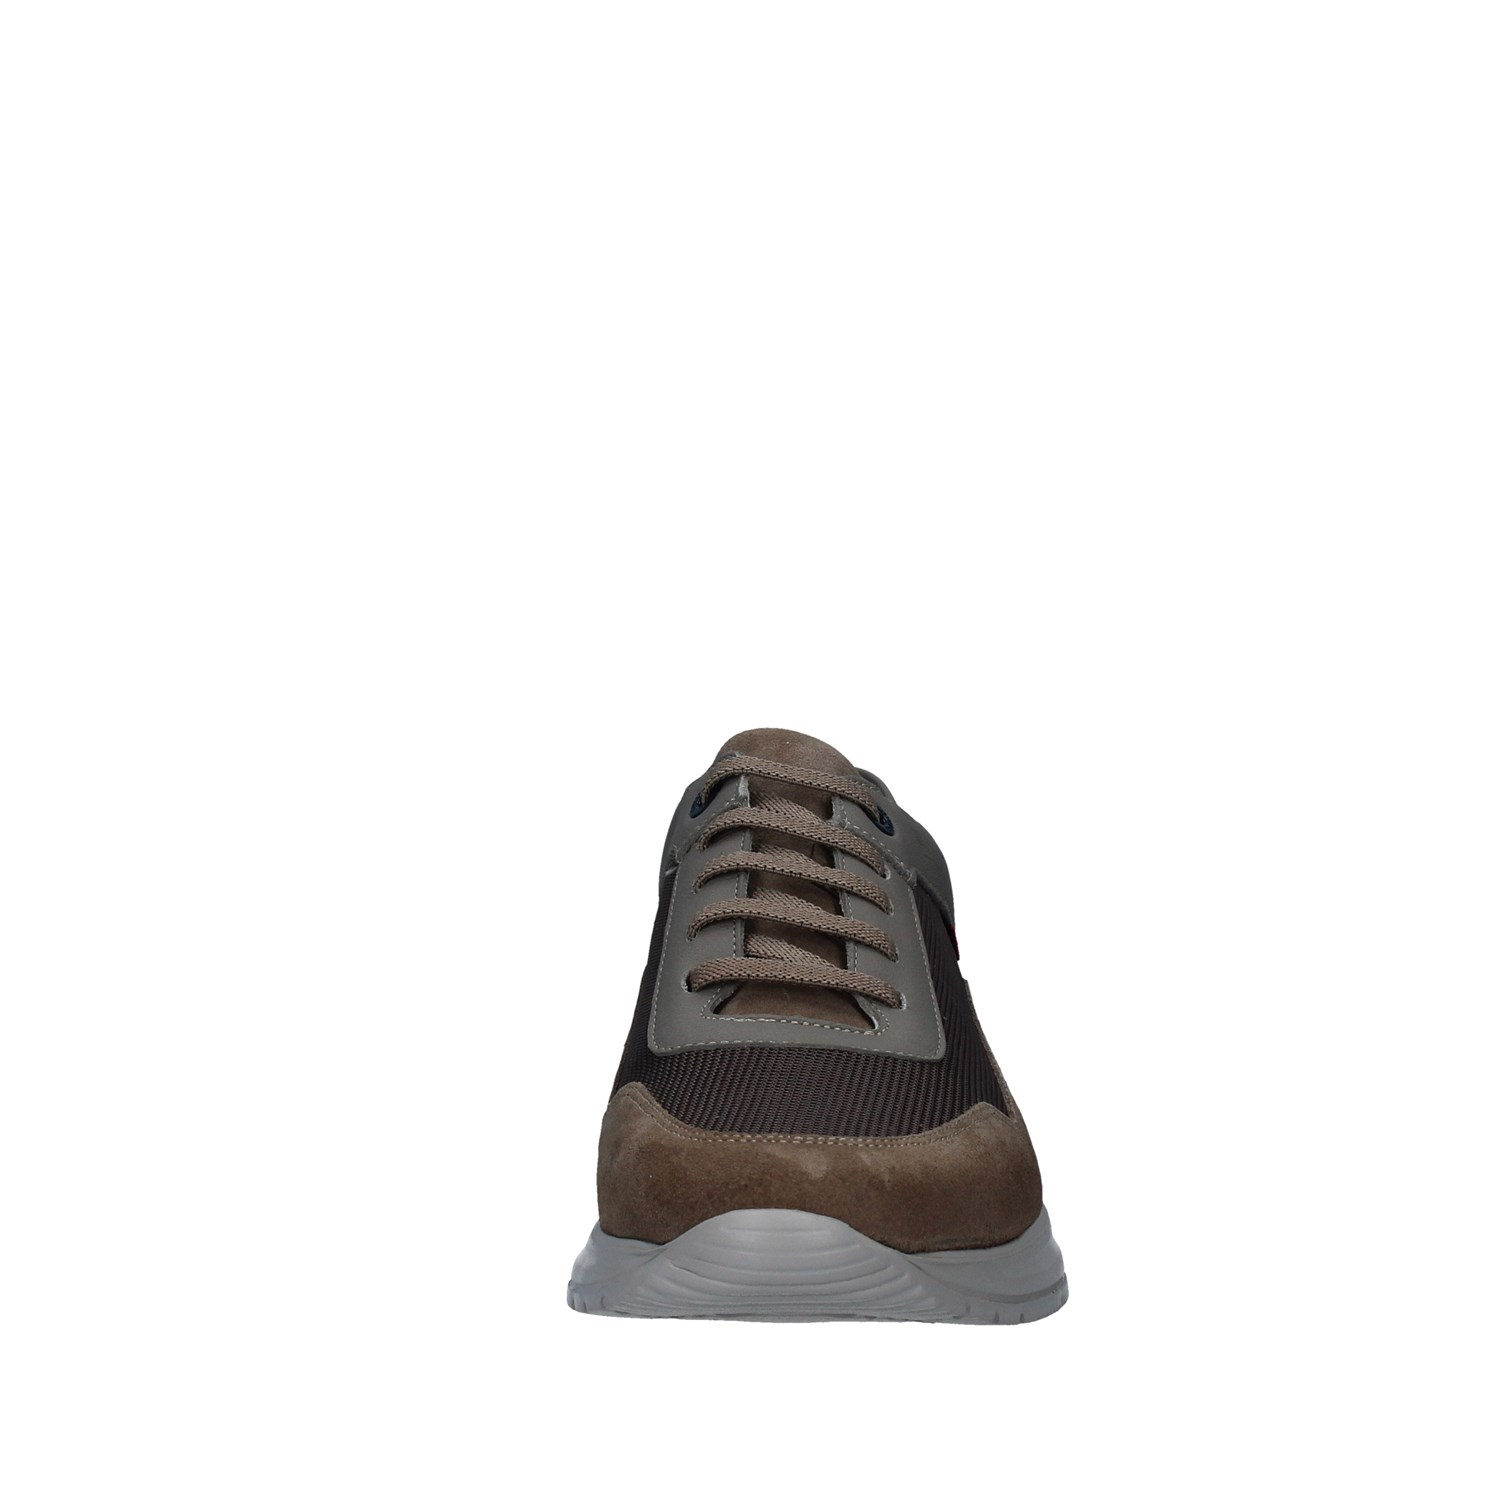 Callaghan Shoes Man low BEIGE 91311